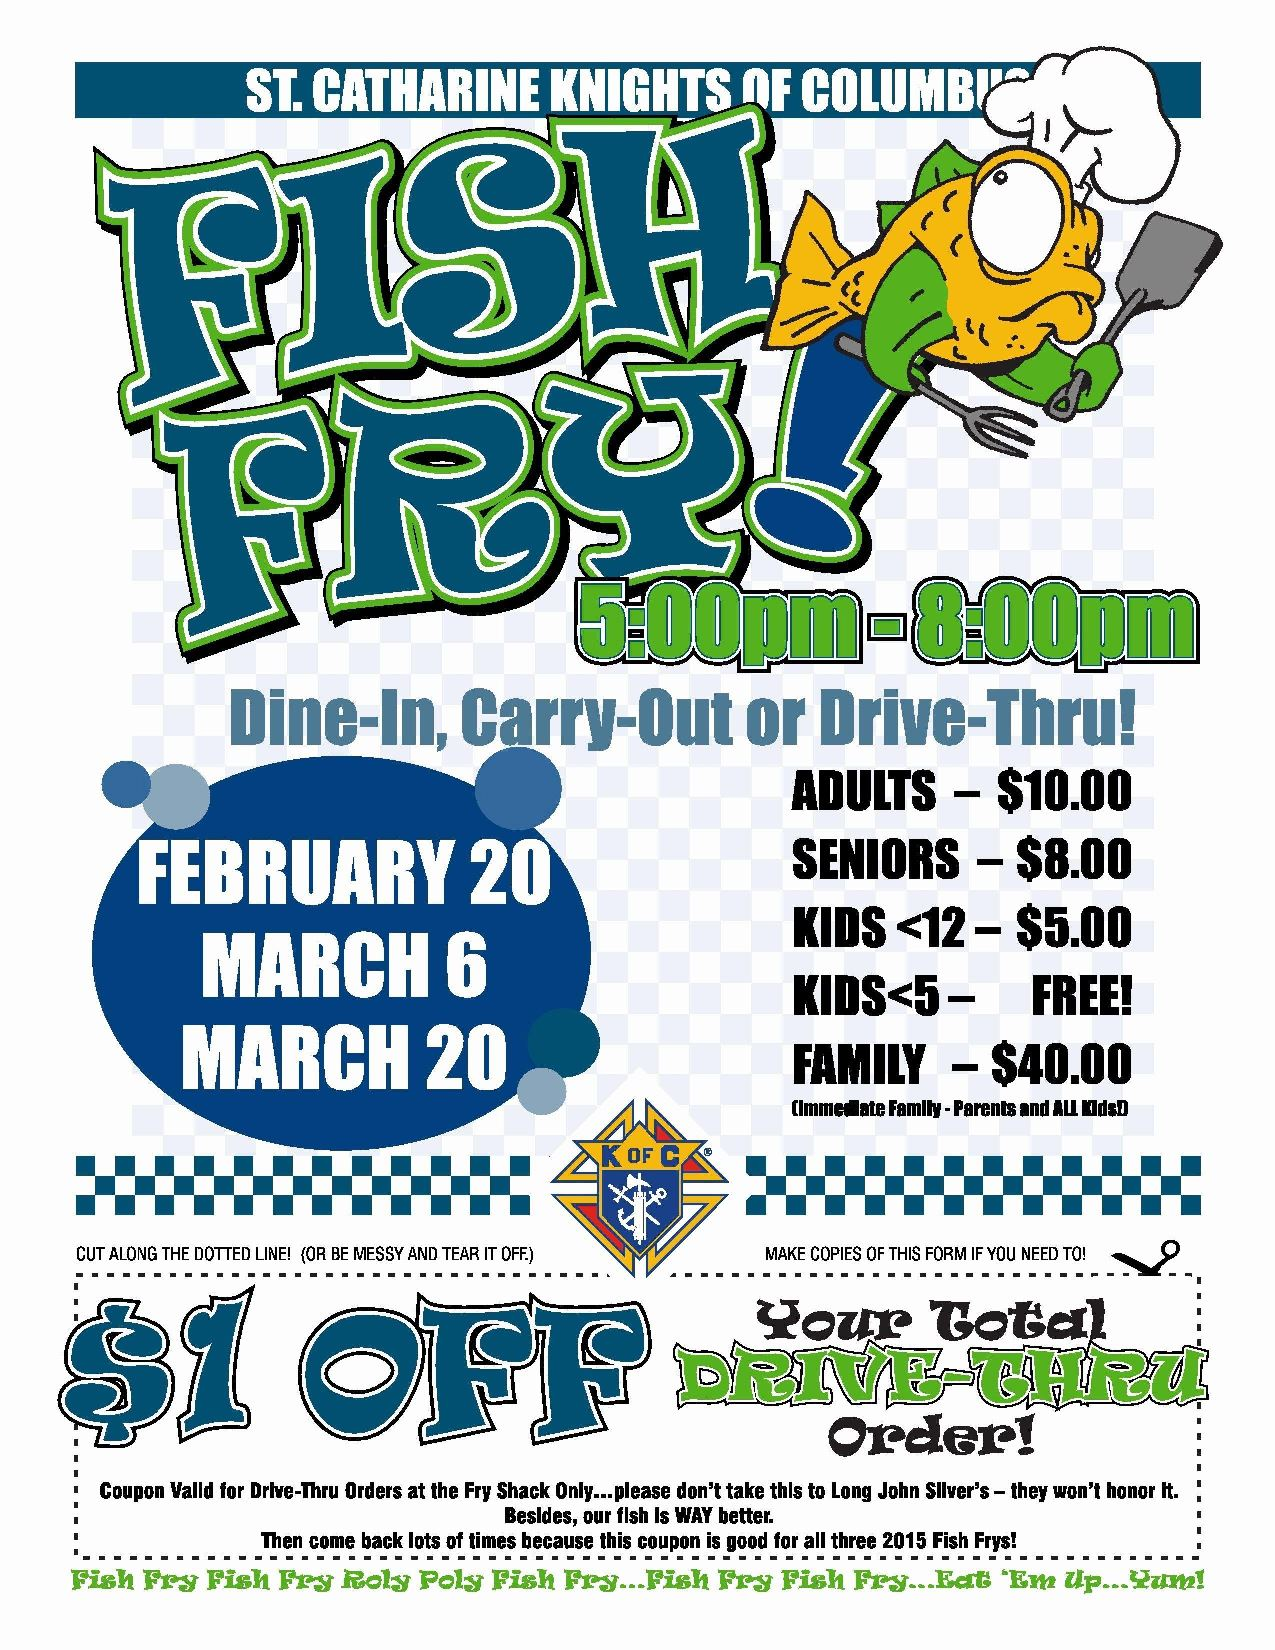 004 Impressive Fish Fry Flyer Template Picture  Printable Free Powerpoint PsdFull